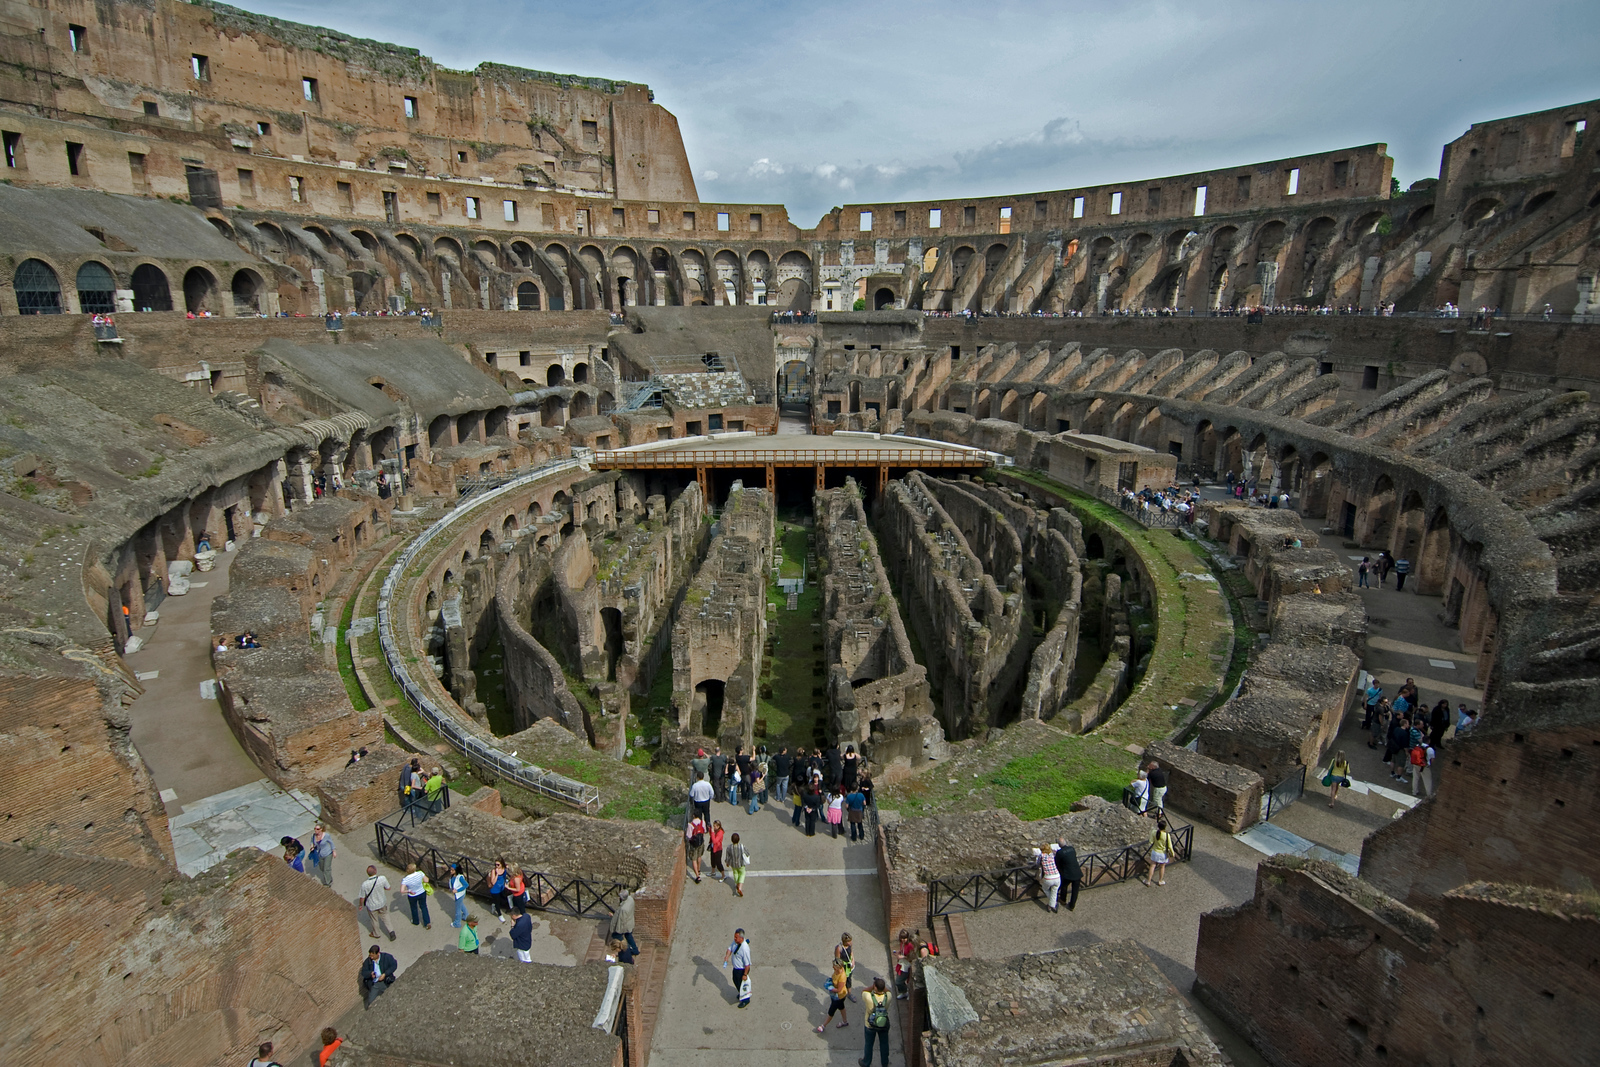 View of the ruins inside Colosseum in Rome, Italy